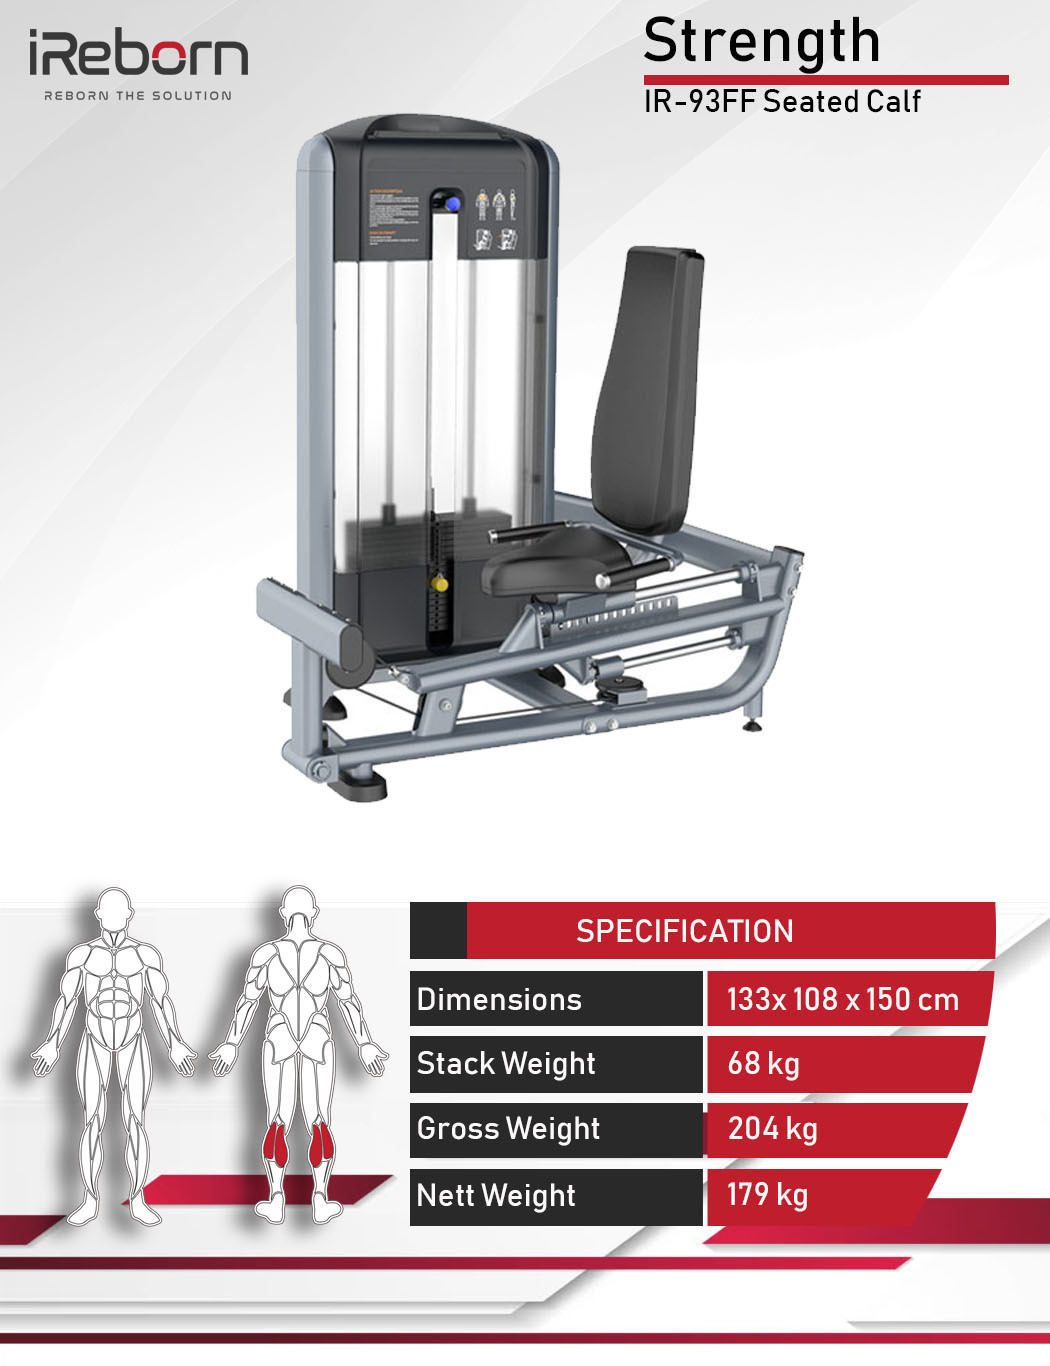 IR-93FF Seated Calf 10